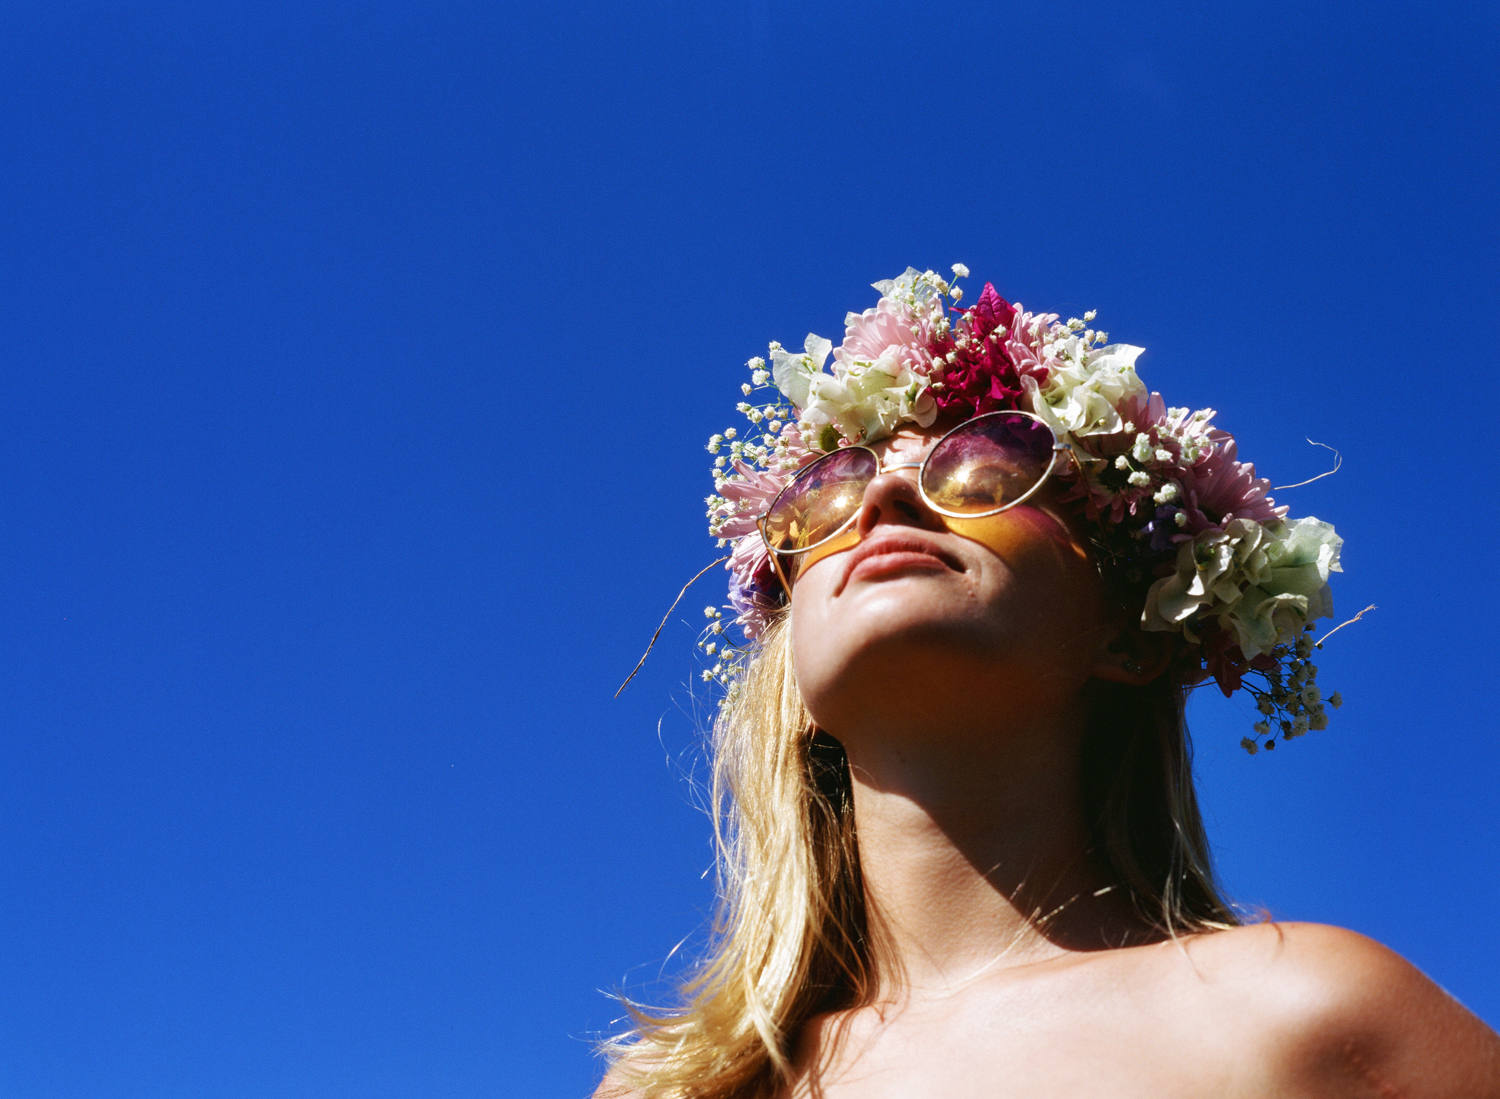 Photo of girl in flower crown on Kodak E100 by hawaii photographer Wendy Laurel